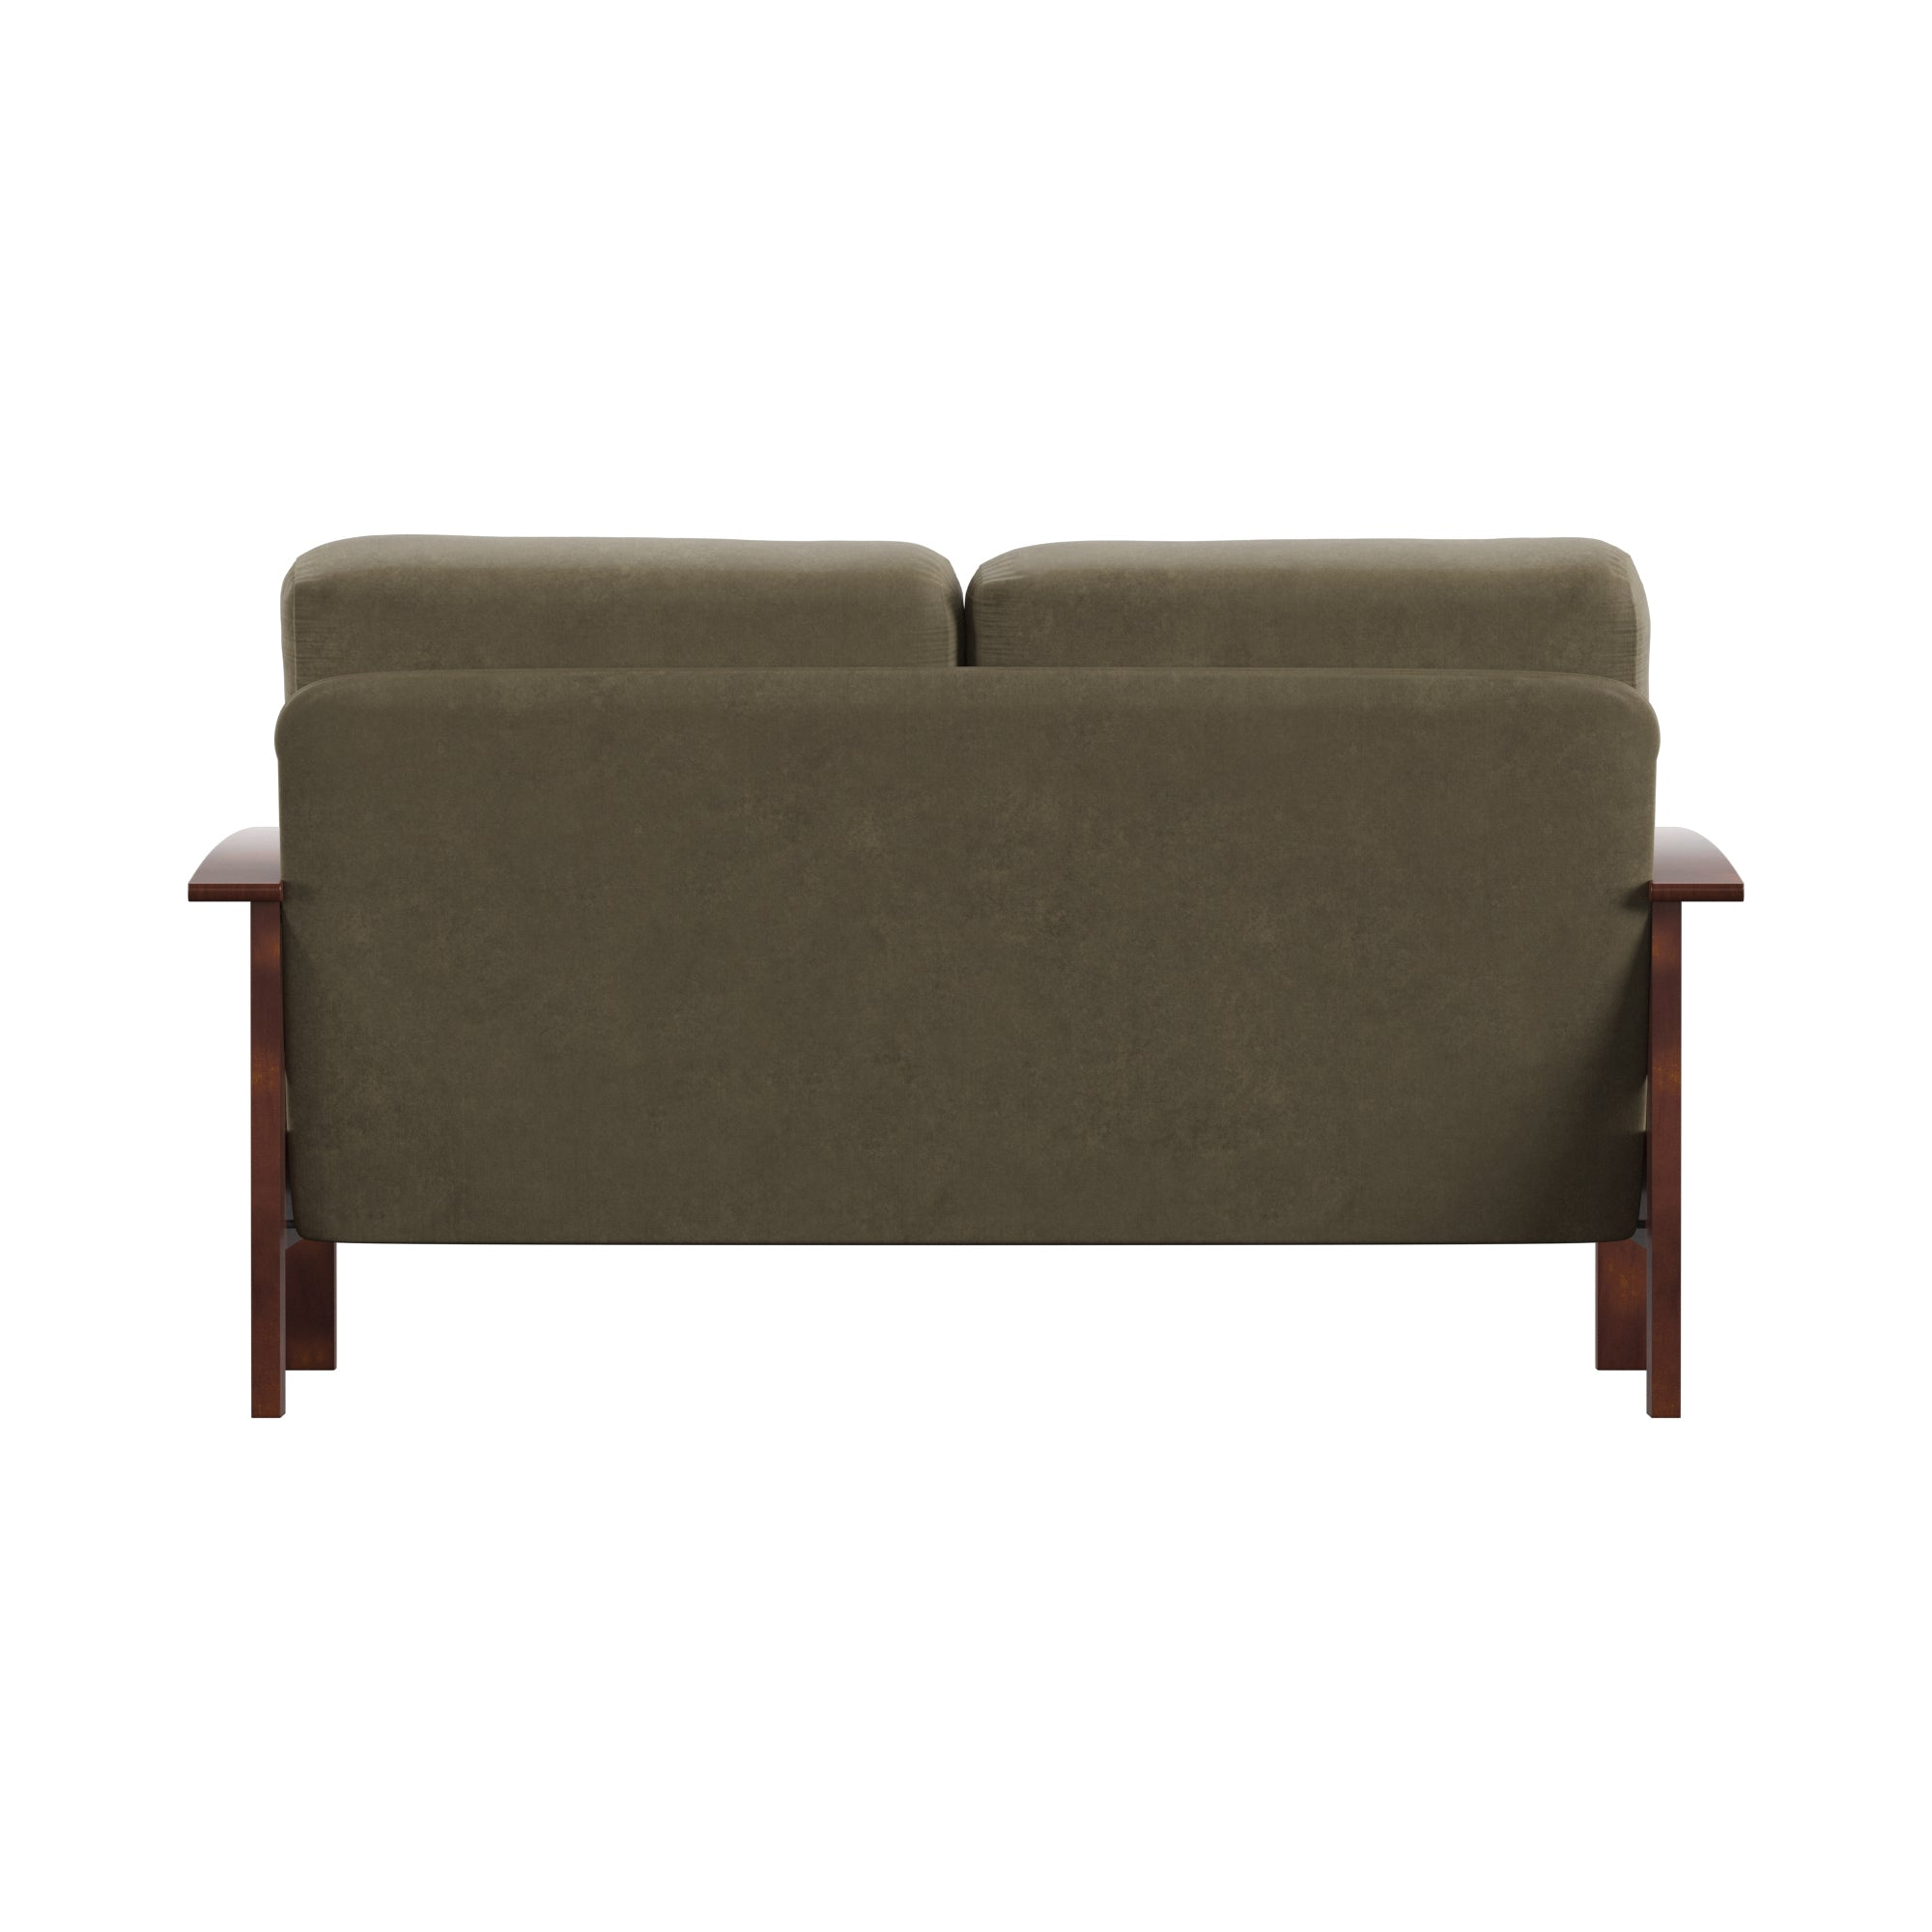 Mission-Style Wood Loveseat - Olive Microfiber, Oak Finish